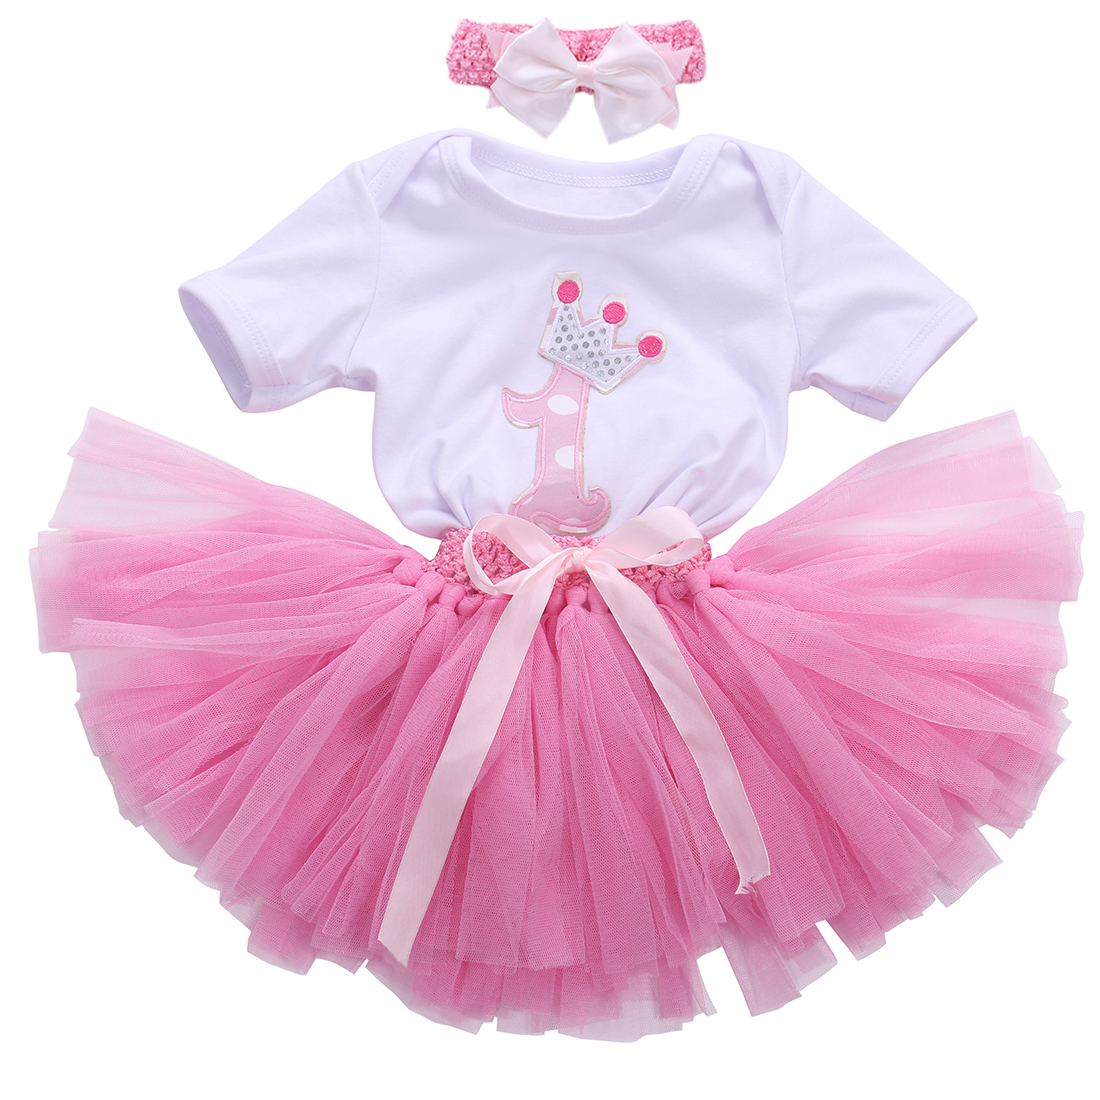 3Pcs Set Baby Girl Crown Tutu Dress Infant 1st Birthday Party Outfit Romper Bubble Skirt Headband Bebe Newborns Tulle Vestidos crown princess 1 year girl birthday dress headband infant lace tutu set toddler party outfits vestido cotton baby girl clothes